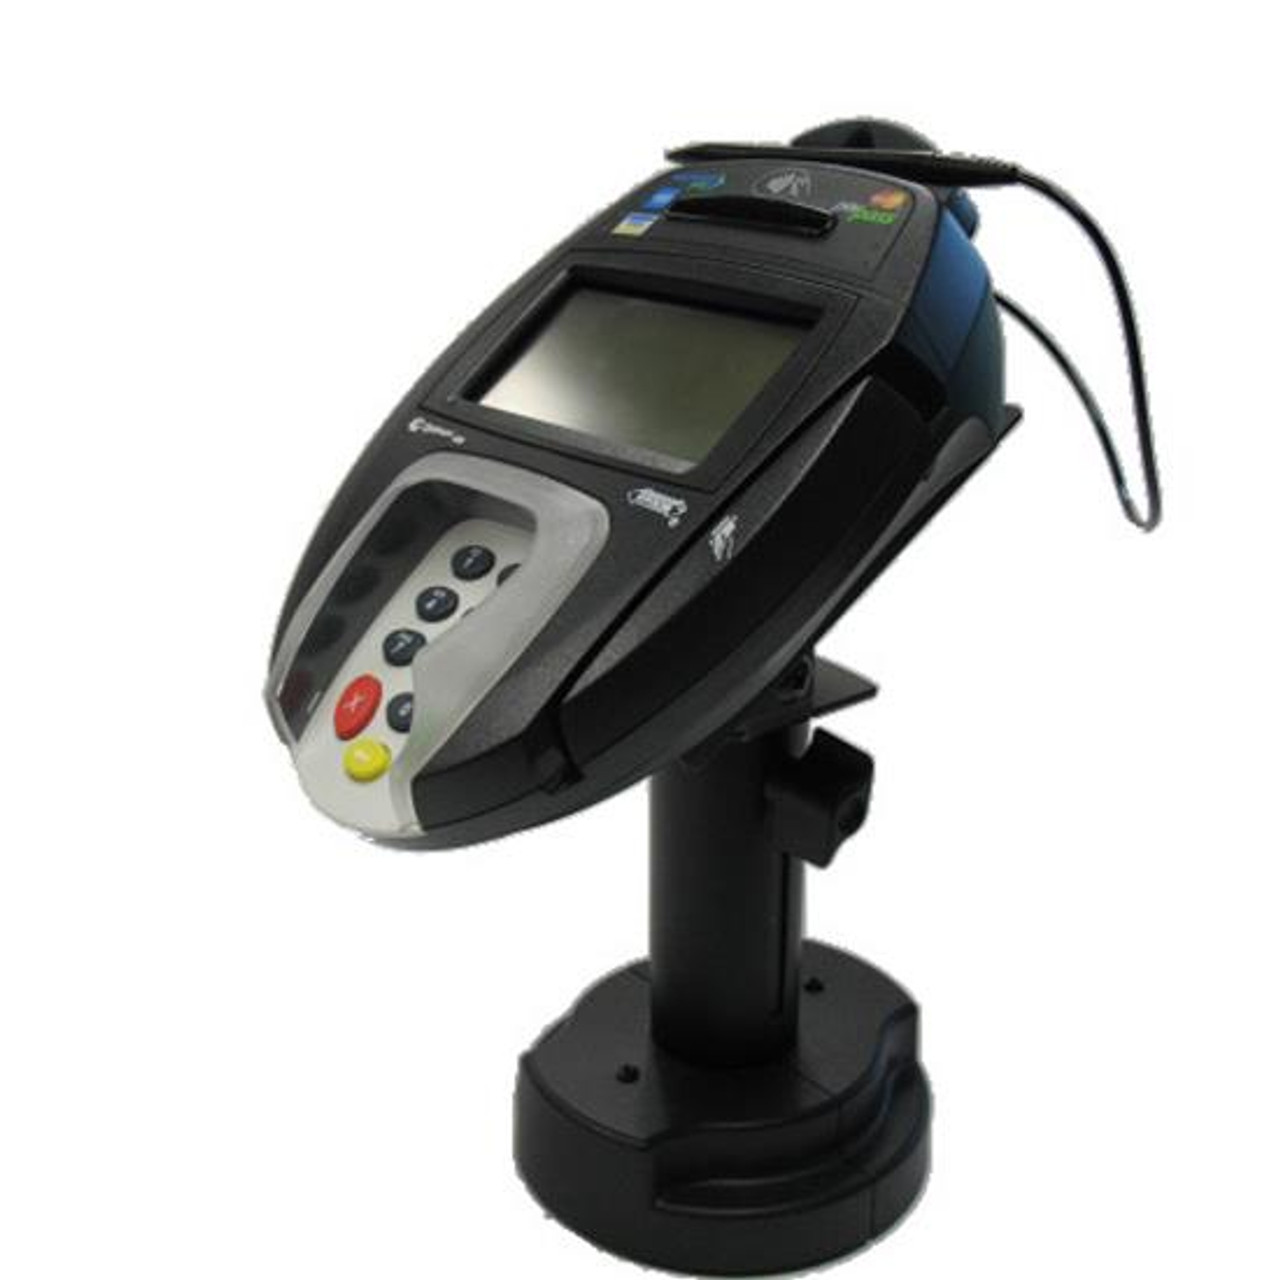 Swivel Stands Credit Card Stand Telescoping Pedestal Quick Release VeriFone MX870